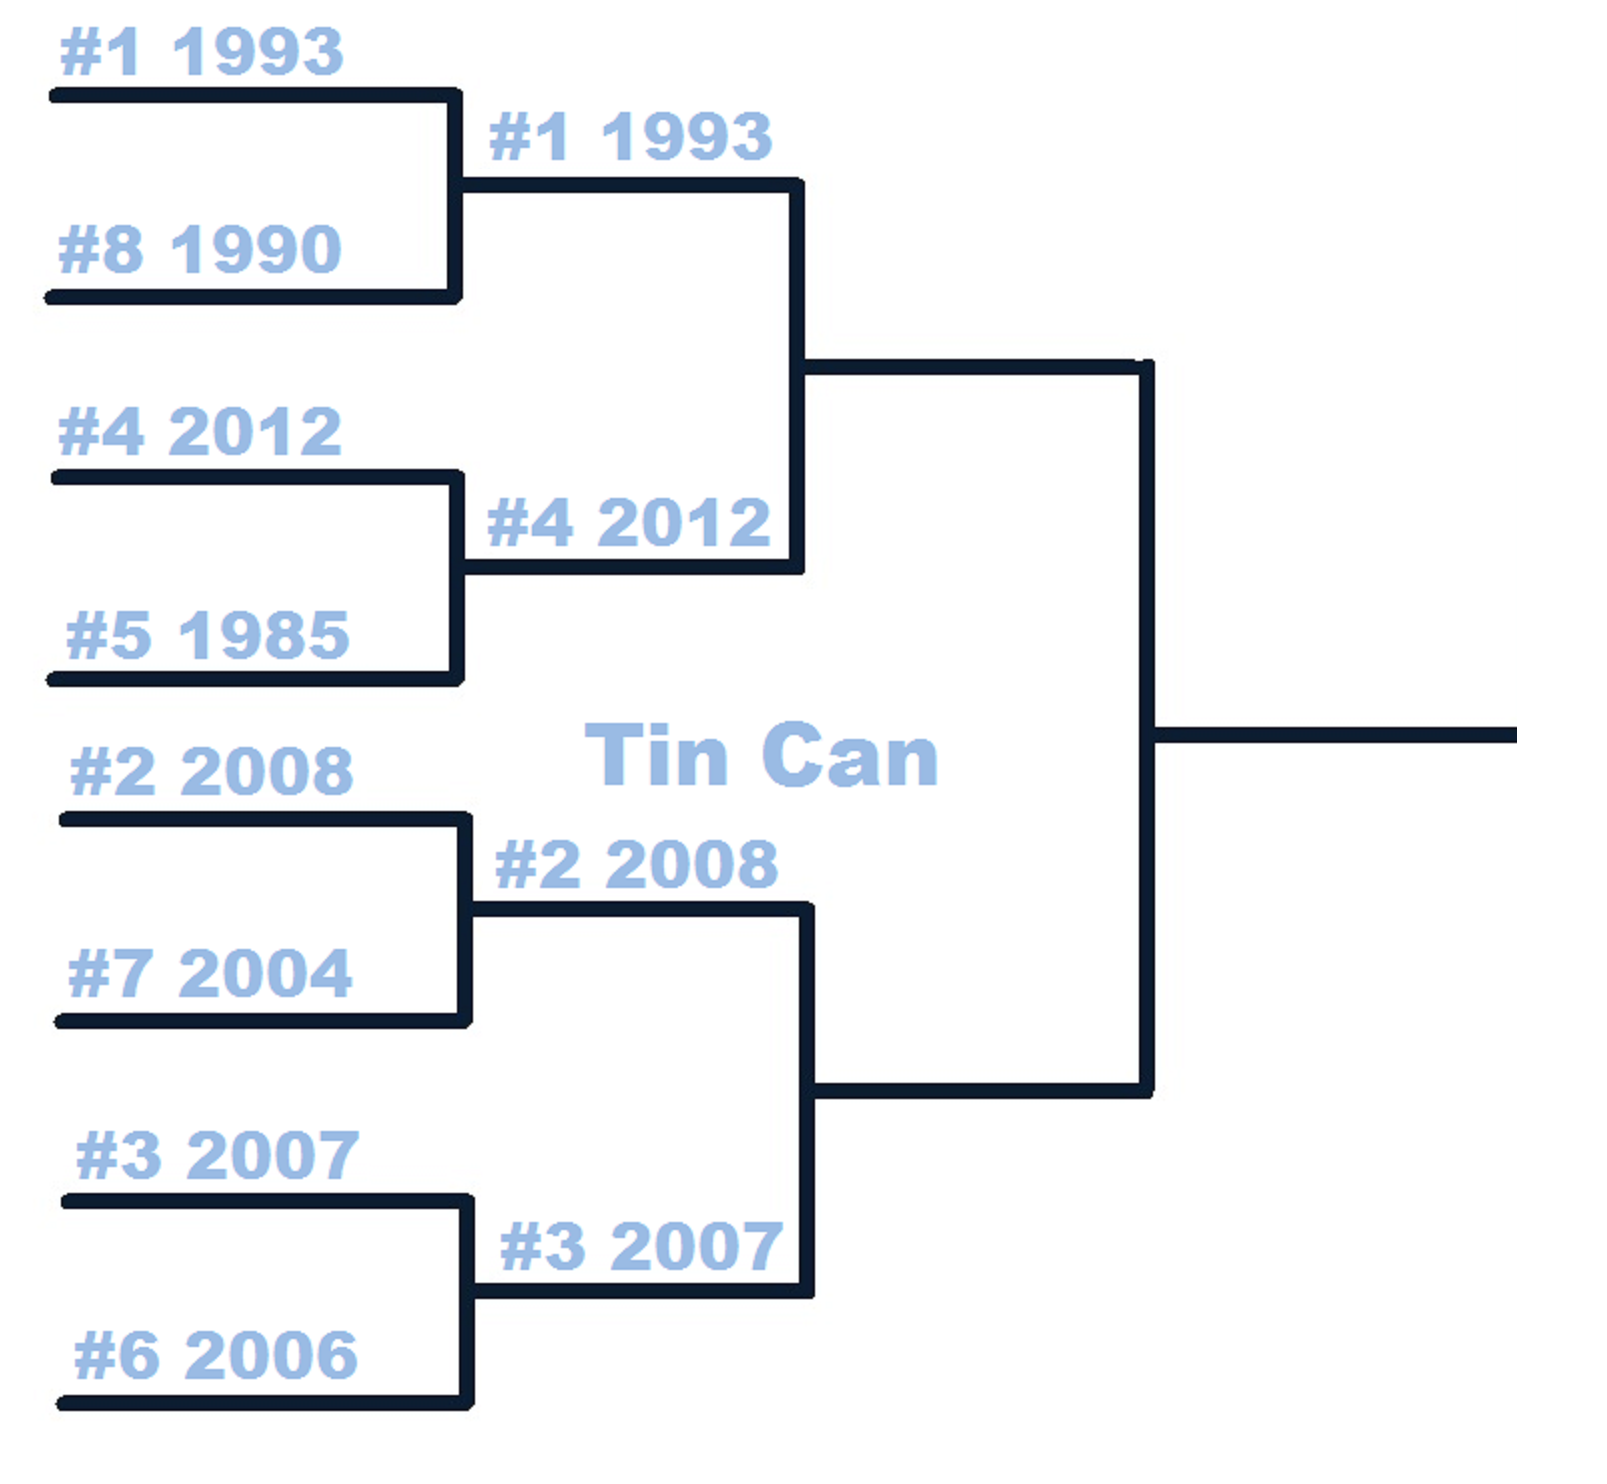 Thb_countdown_tournament-tin_can-1st_medium